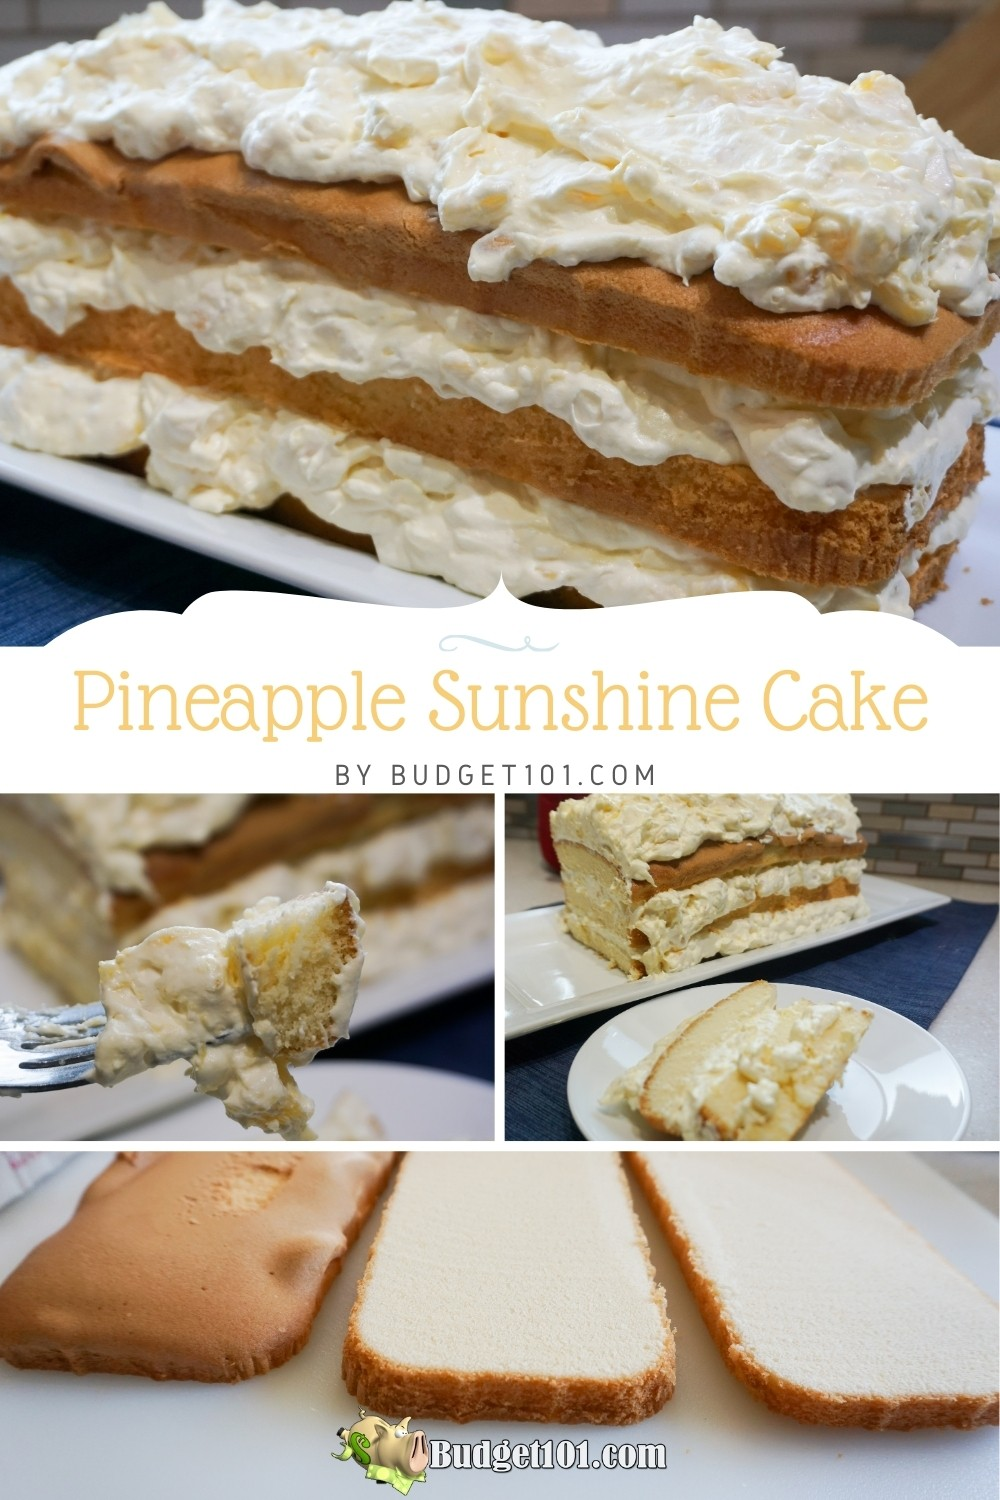 Pineapple Sunshine Cake- quick & Easy layered dessert that is ready in less than 20 minutes #PineappleSunshineCake #Dessert #SaraLee #DirtCheap #Budget101 #Potluck